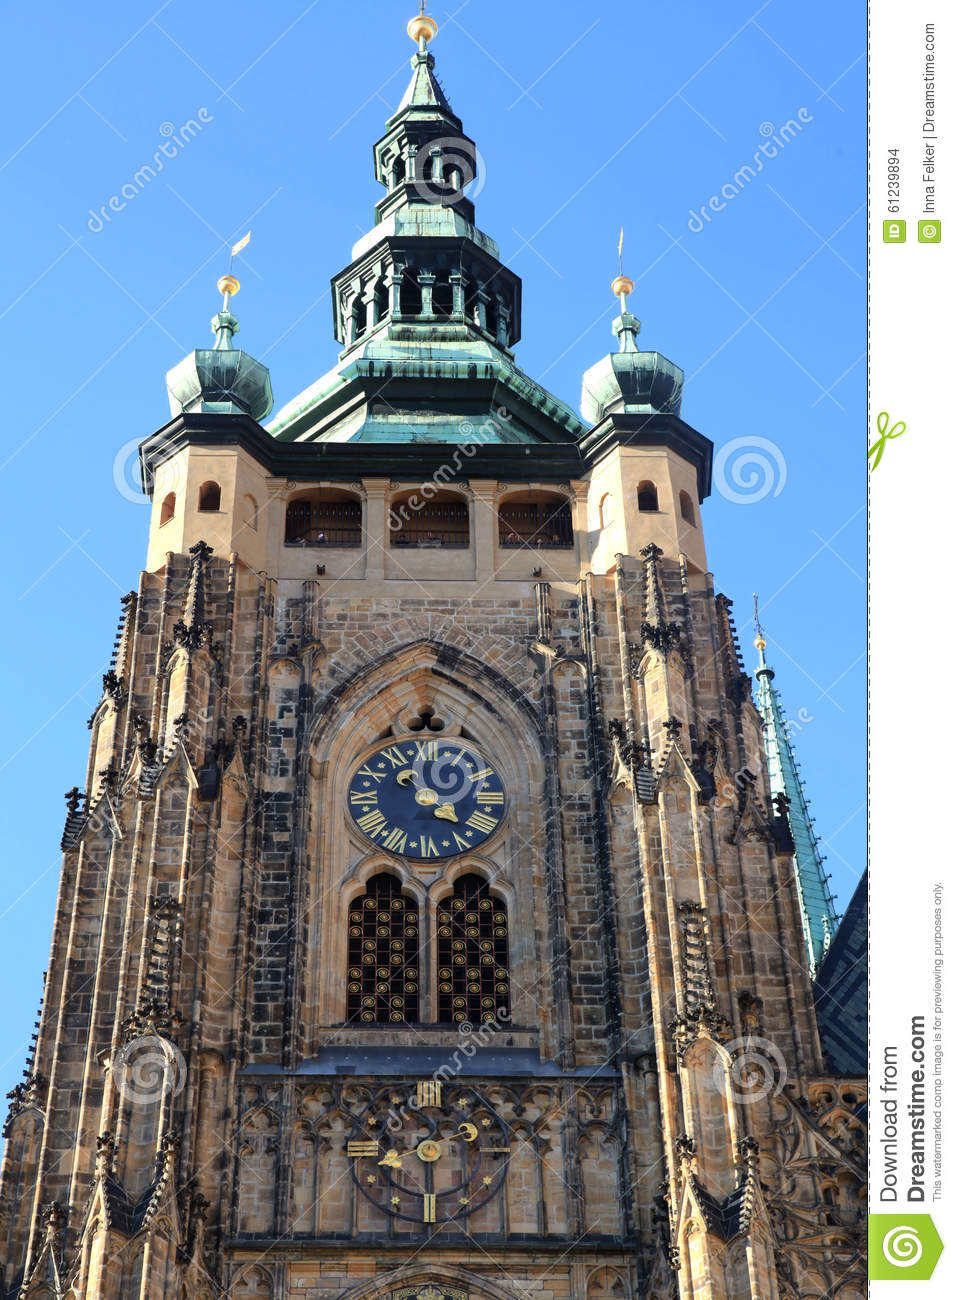 Clock Tower Of St. Vitus Cathedral In Prague Castle Stock Photo.